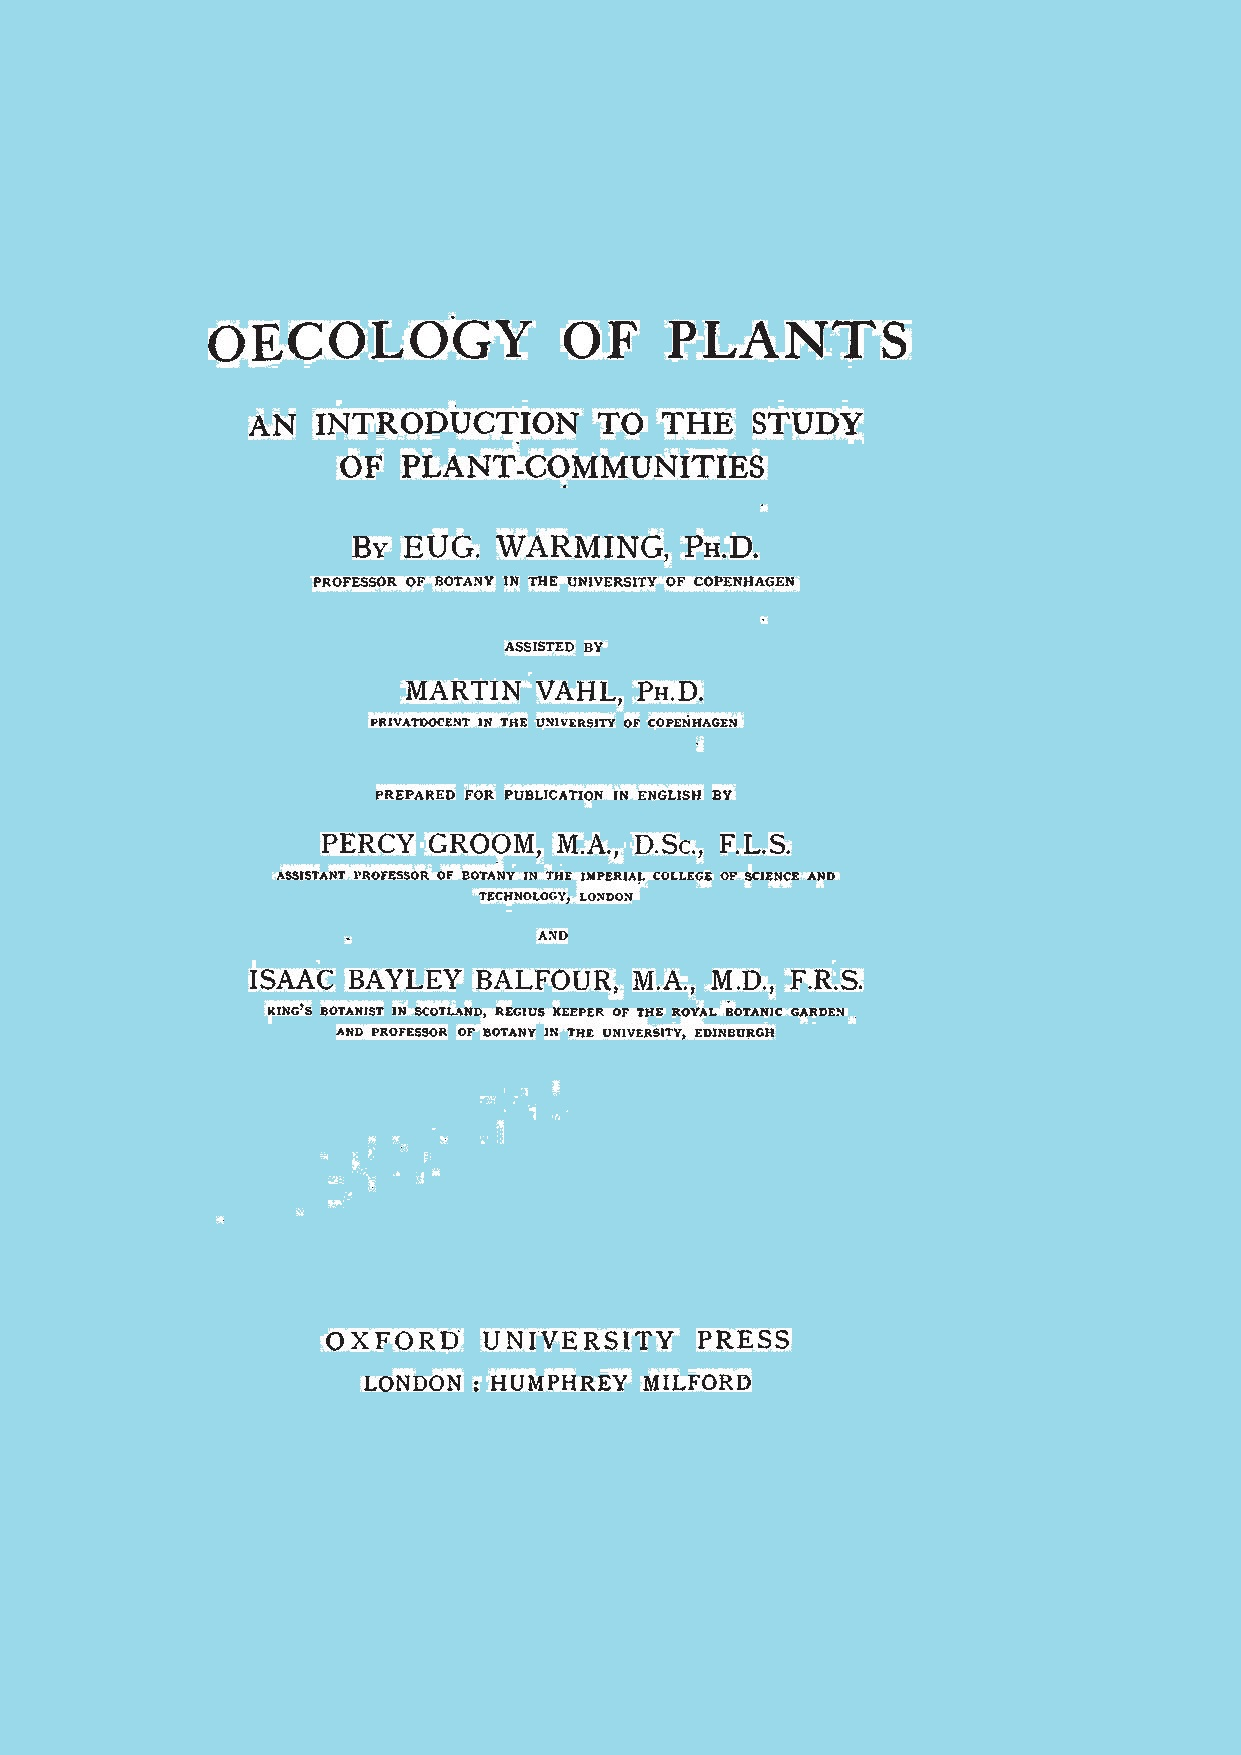 Oecology of plants-warming-SVAC698-1.jpg